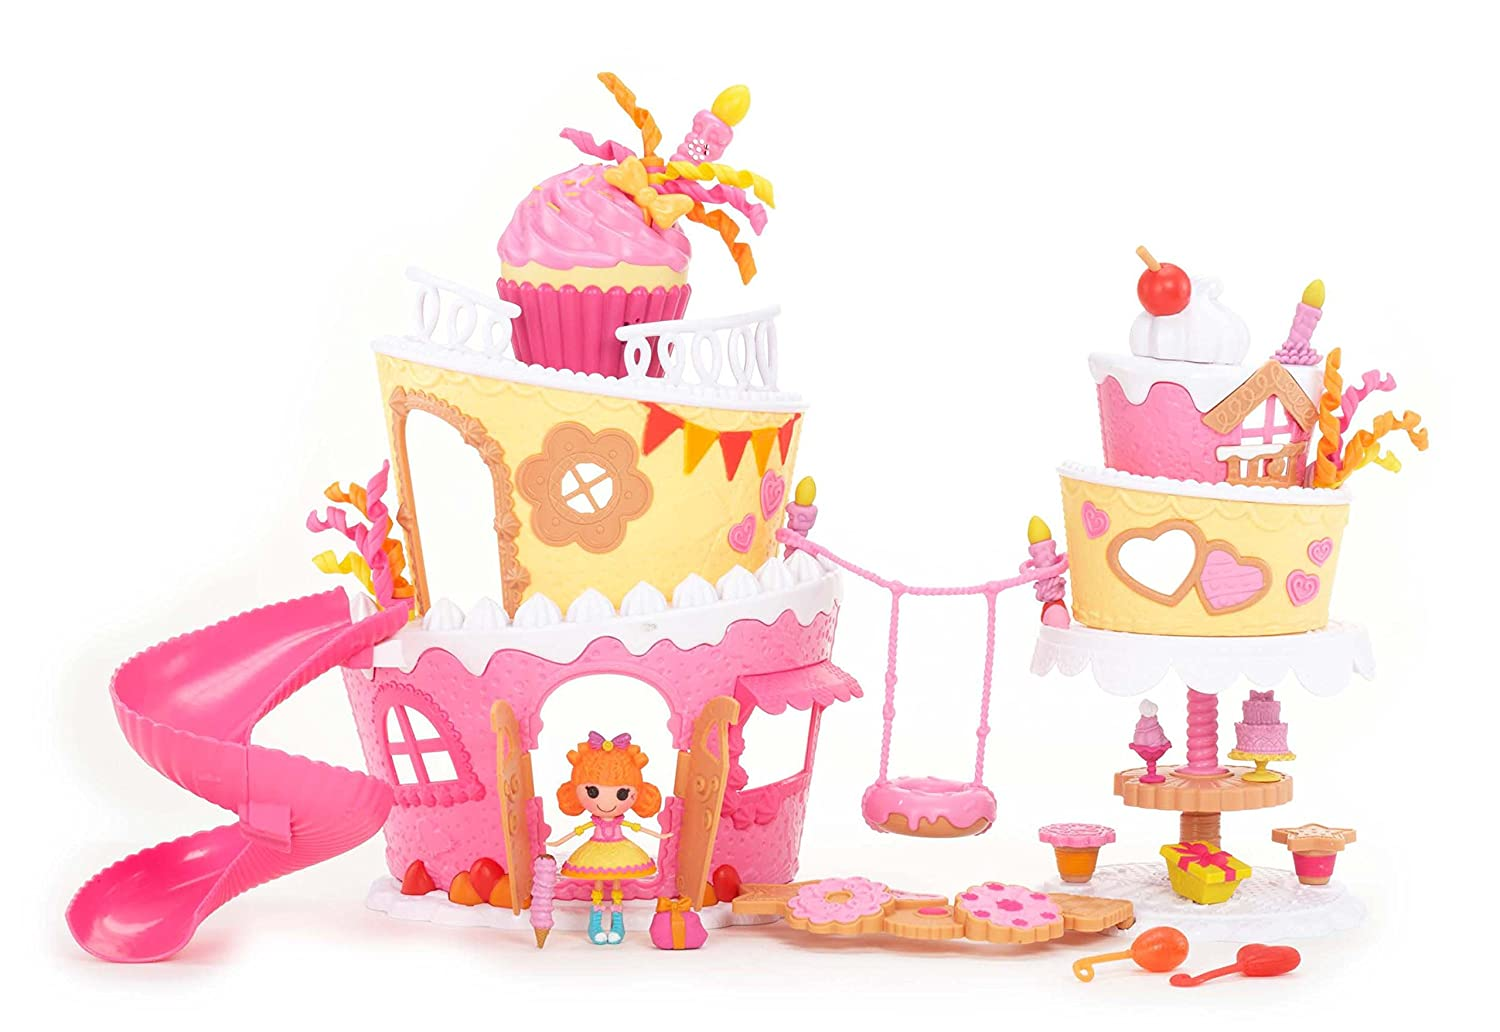 http://www.girlstoysonsale.com/mini-lalaloopsy-super-silly-party-cake-playset/